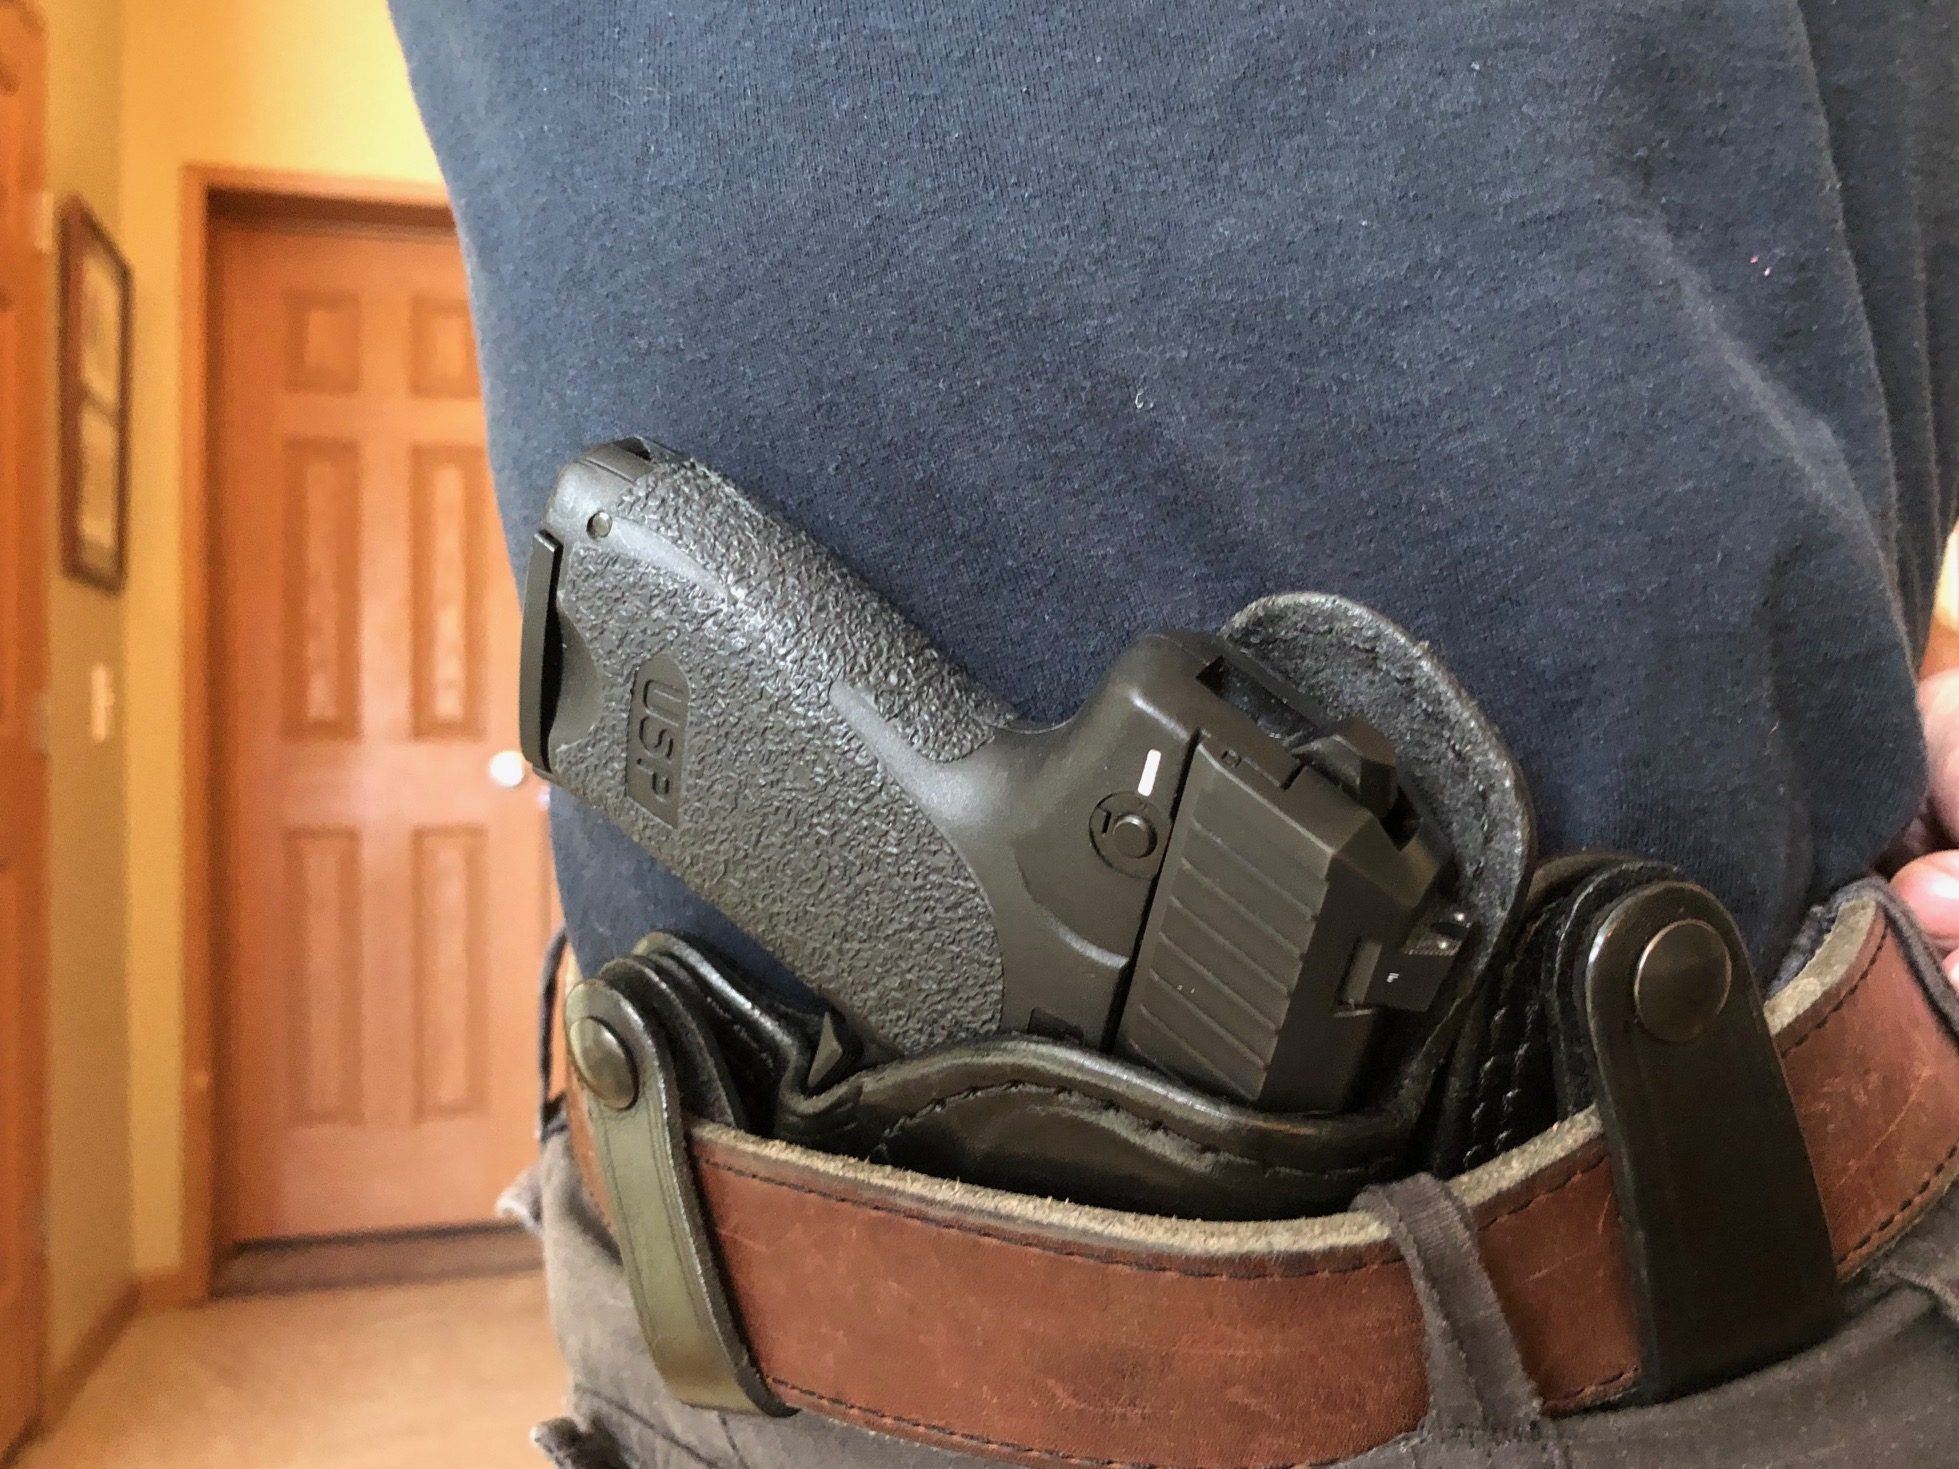 Let's See Your Pic's - How You Carry Concealed.-img_0247-2.jpg